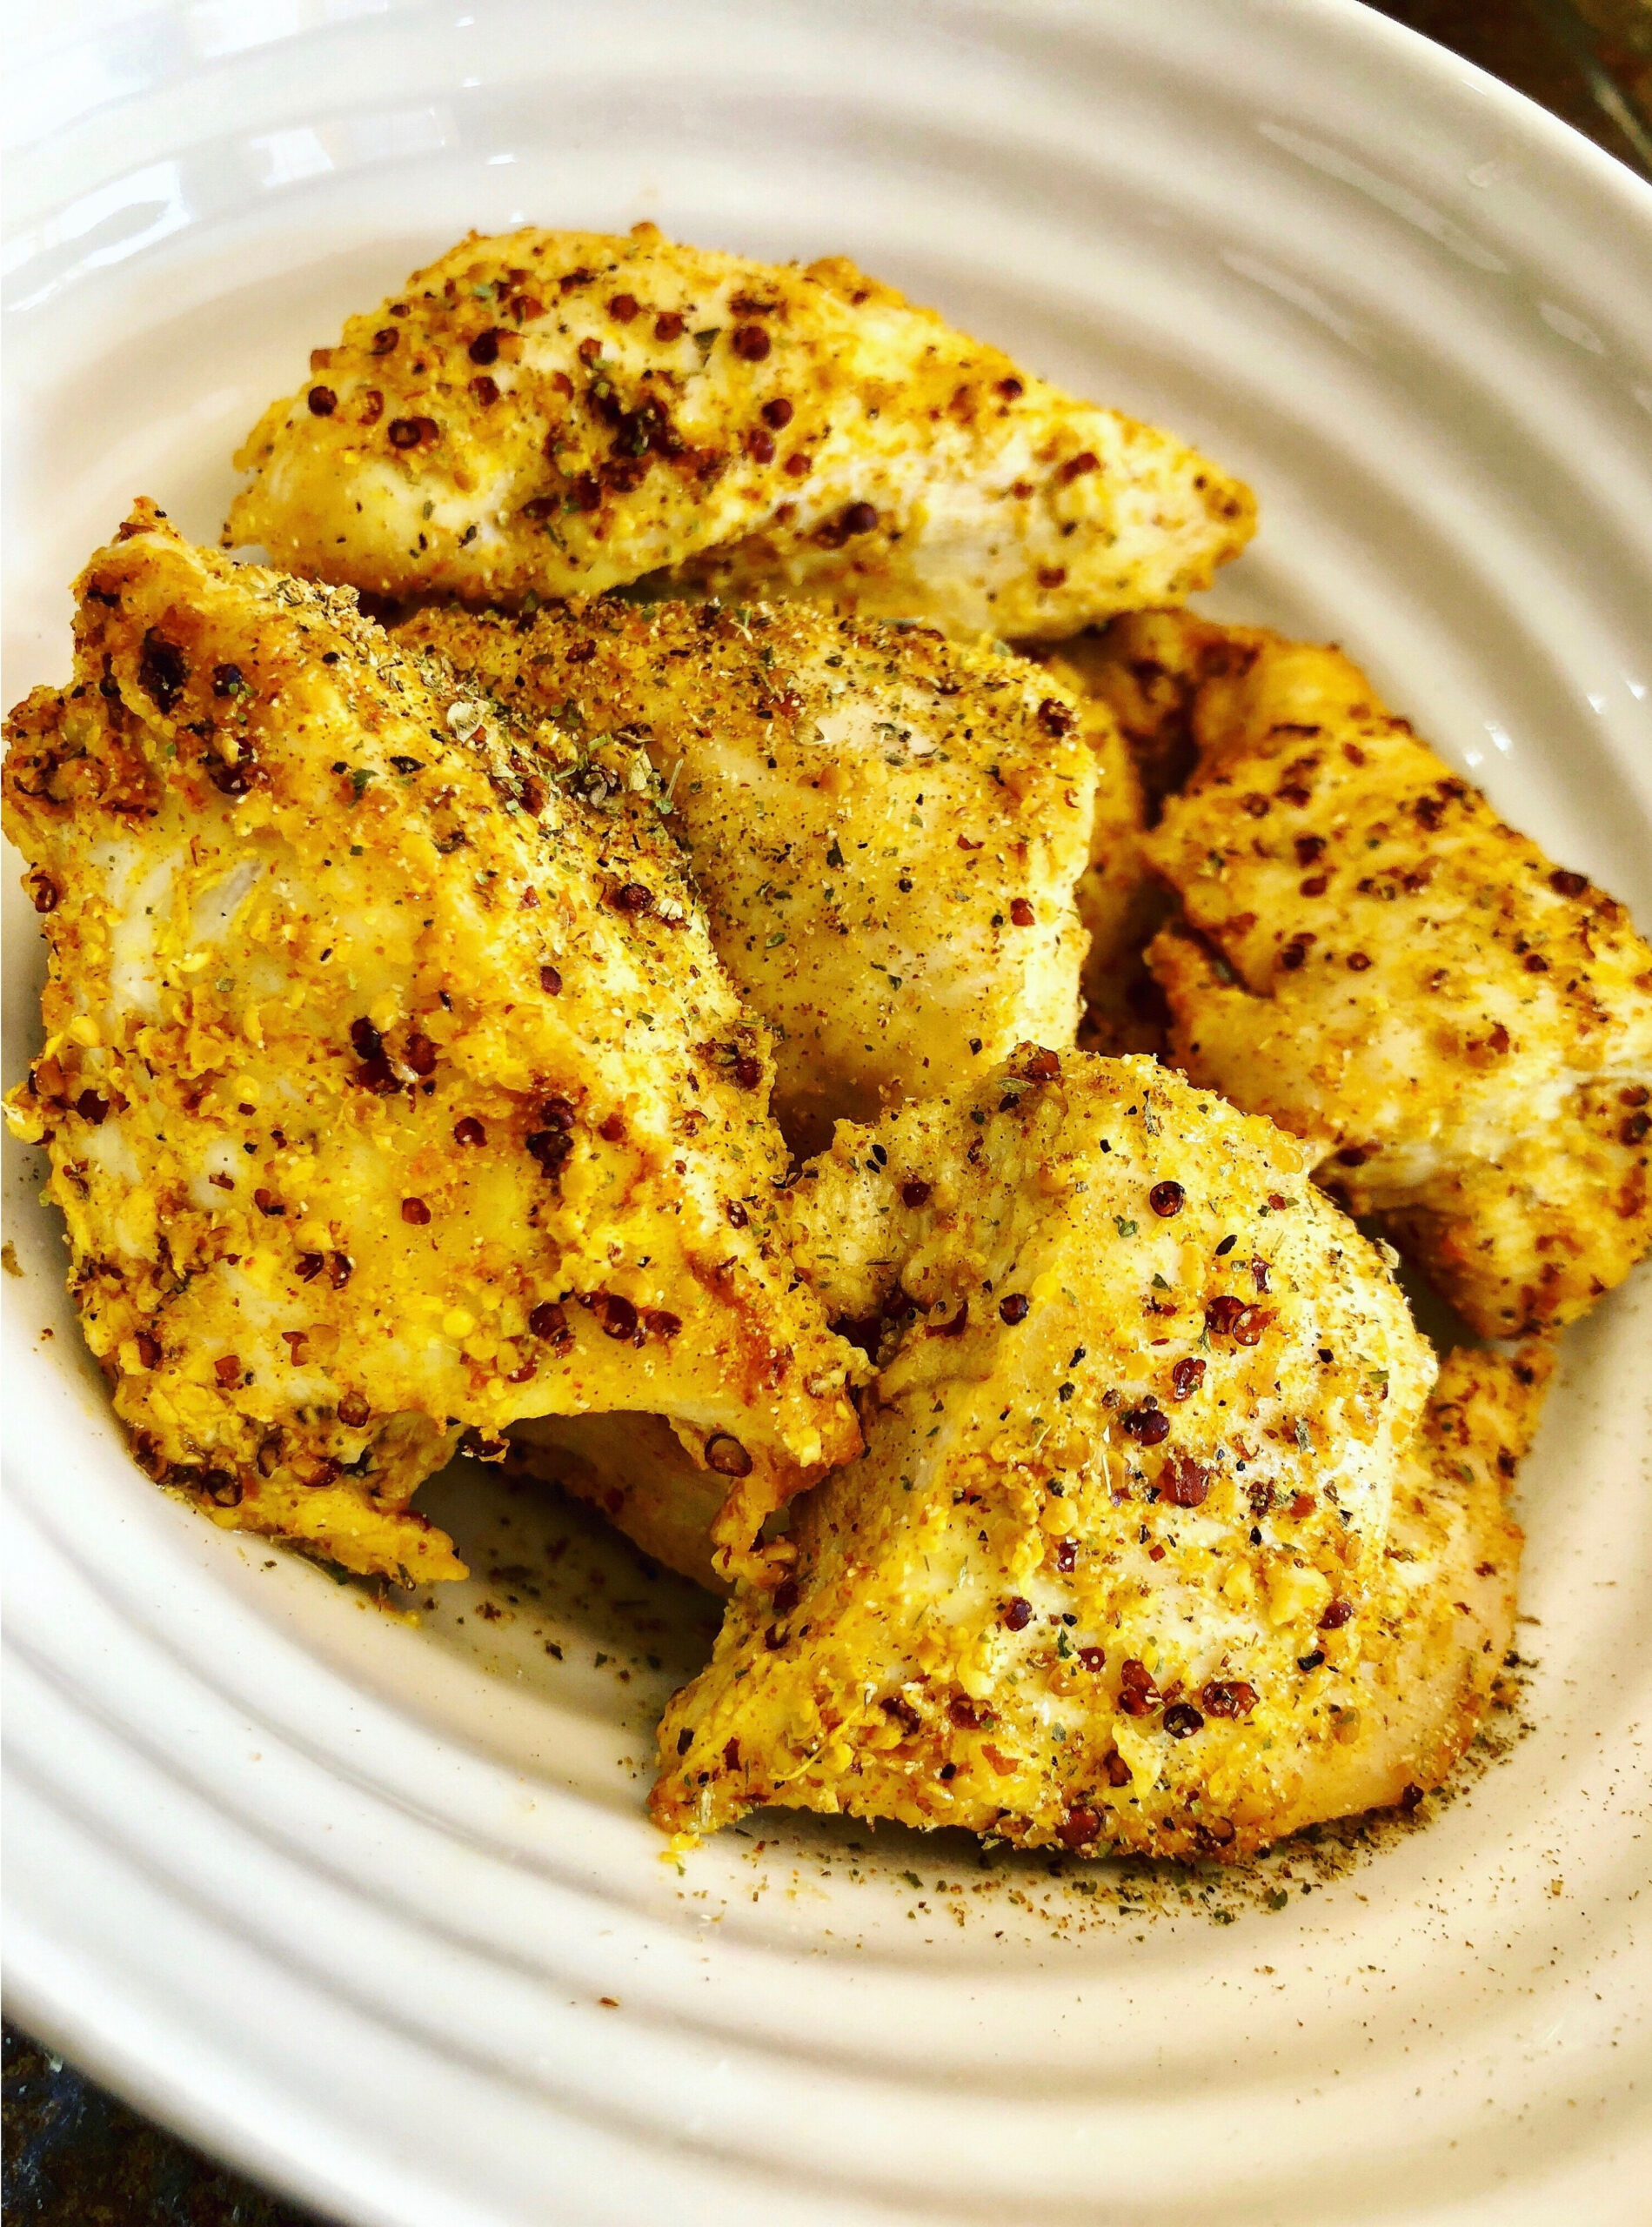 Baked Curry Chicken Breasts - Recipes Baked Chicken Breast